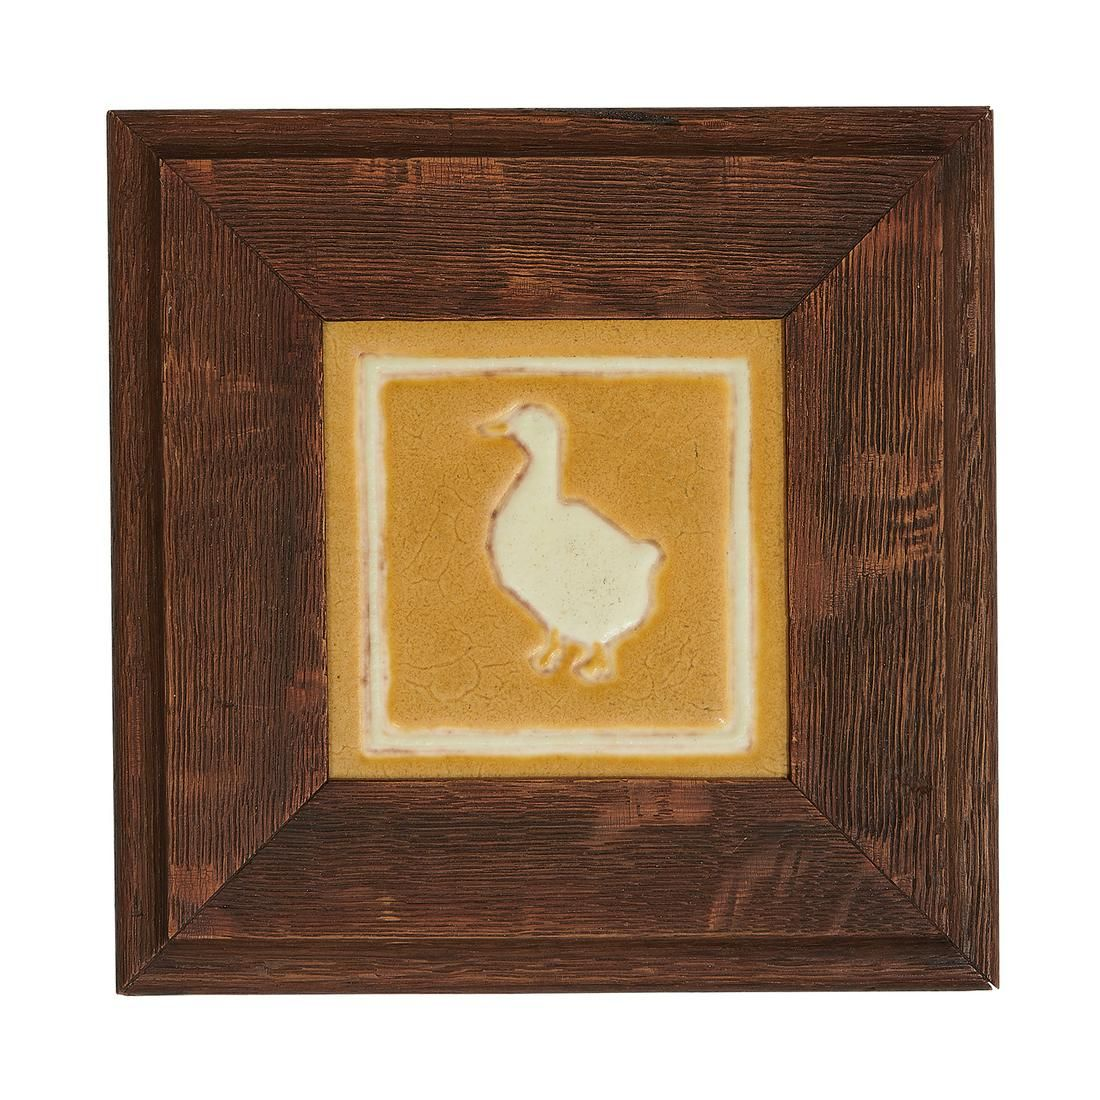 Grueby / The C. Pardee Works tile with a duck